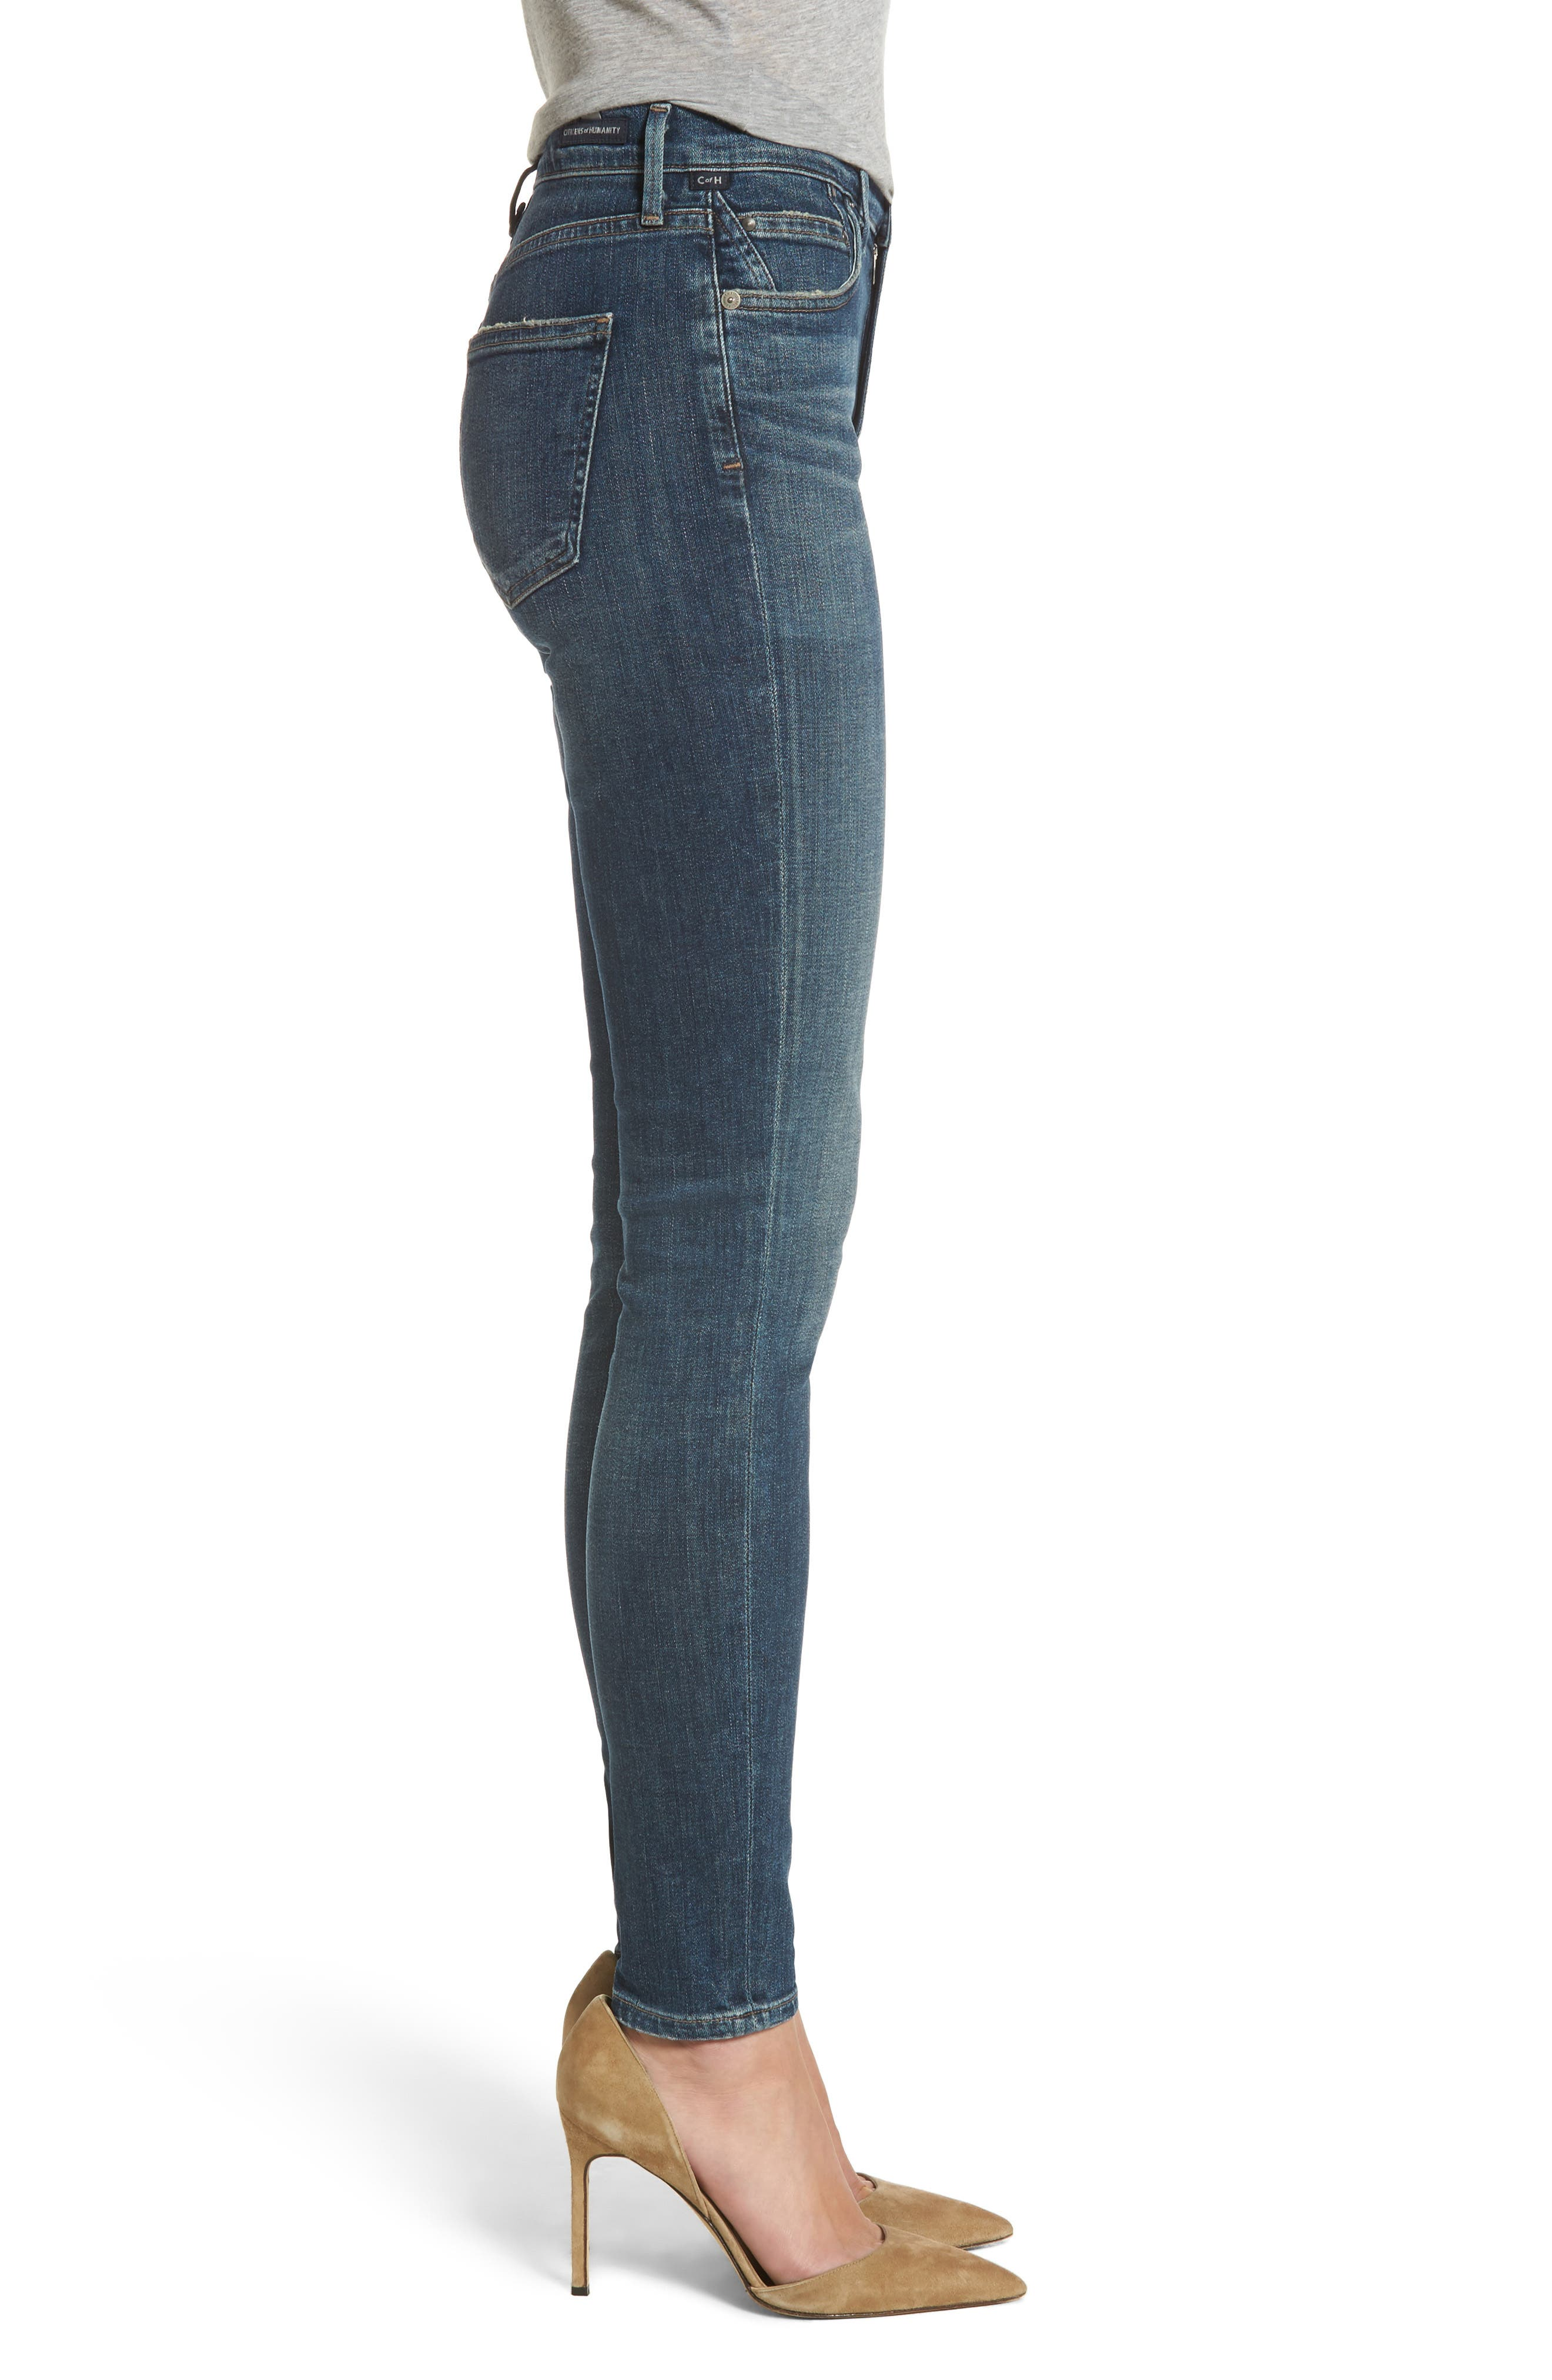 Rocket High Waist Skinny Jeans,                             Alternate thumbnail 3, color,                             Rival